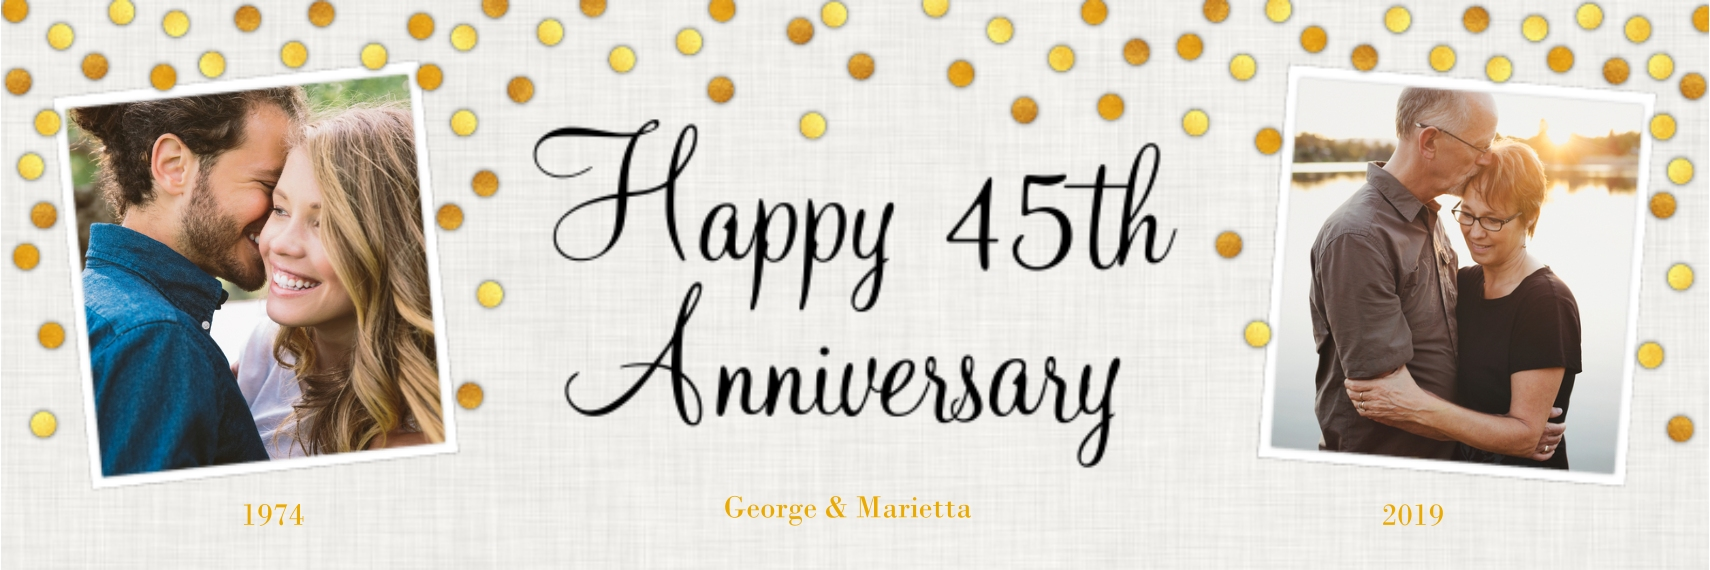 Anniversary 2x6 Adhesive Banner, Home Décor -Gold Anniversary